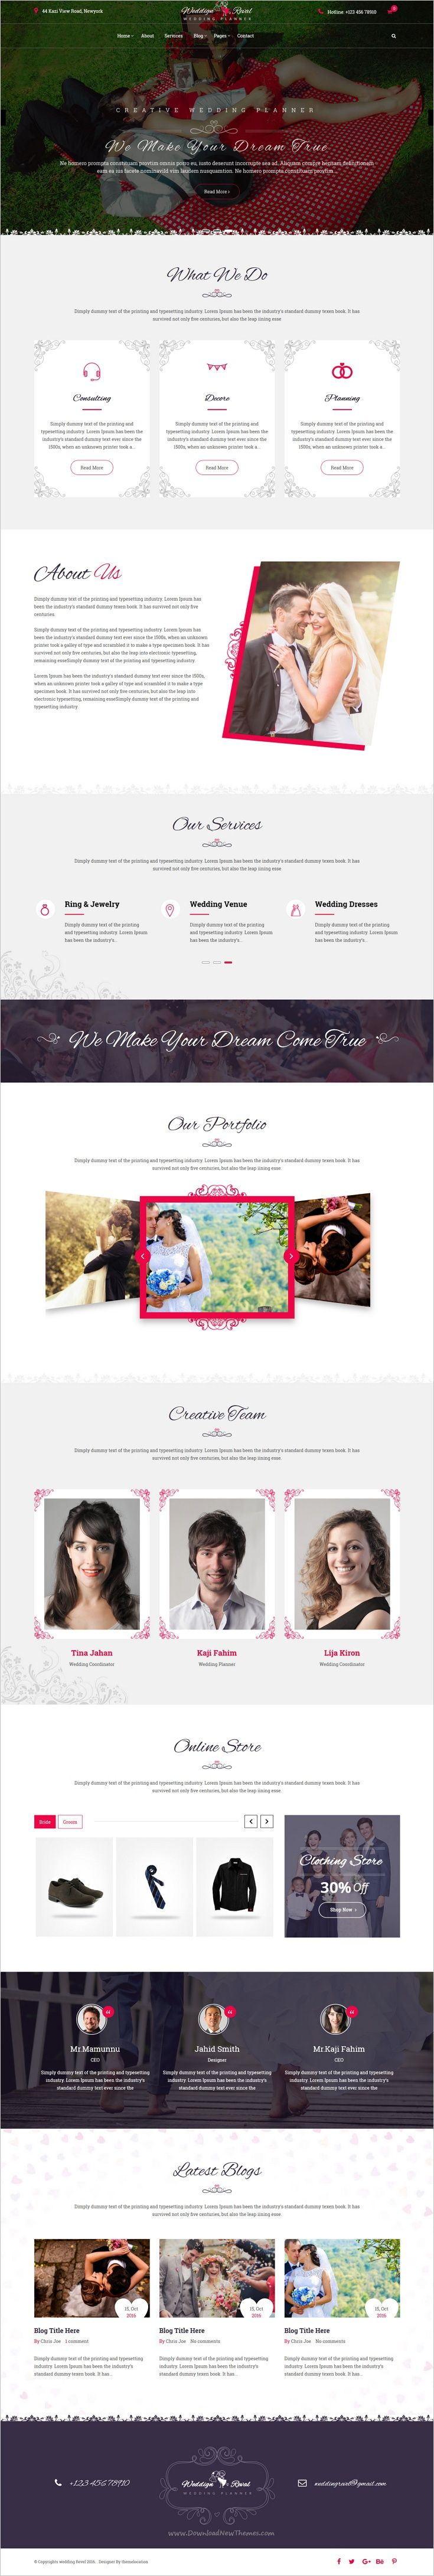 Wedding reval is beautifully design responsive 2in1 #WordPress theme for #wedding planner and #agency website download now➩ https://themeforest.net/item/wedding-reval-wedding-planner-agency-wordpress-theme/18575877?ref=Datasata